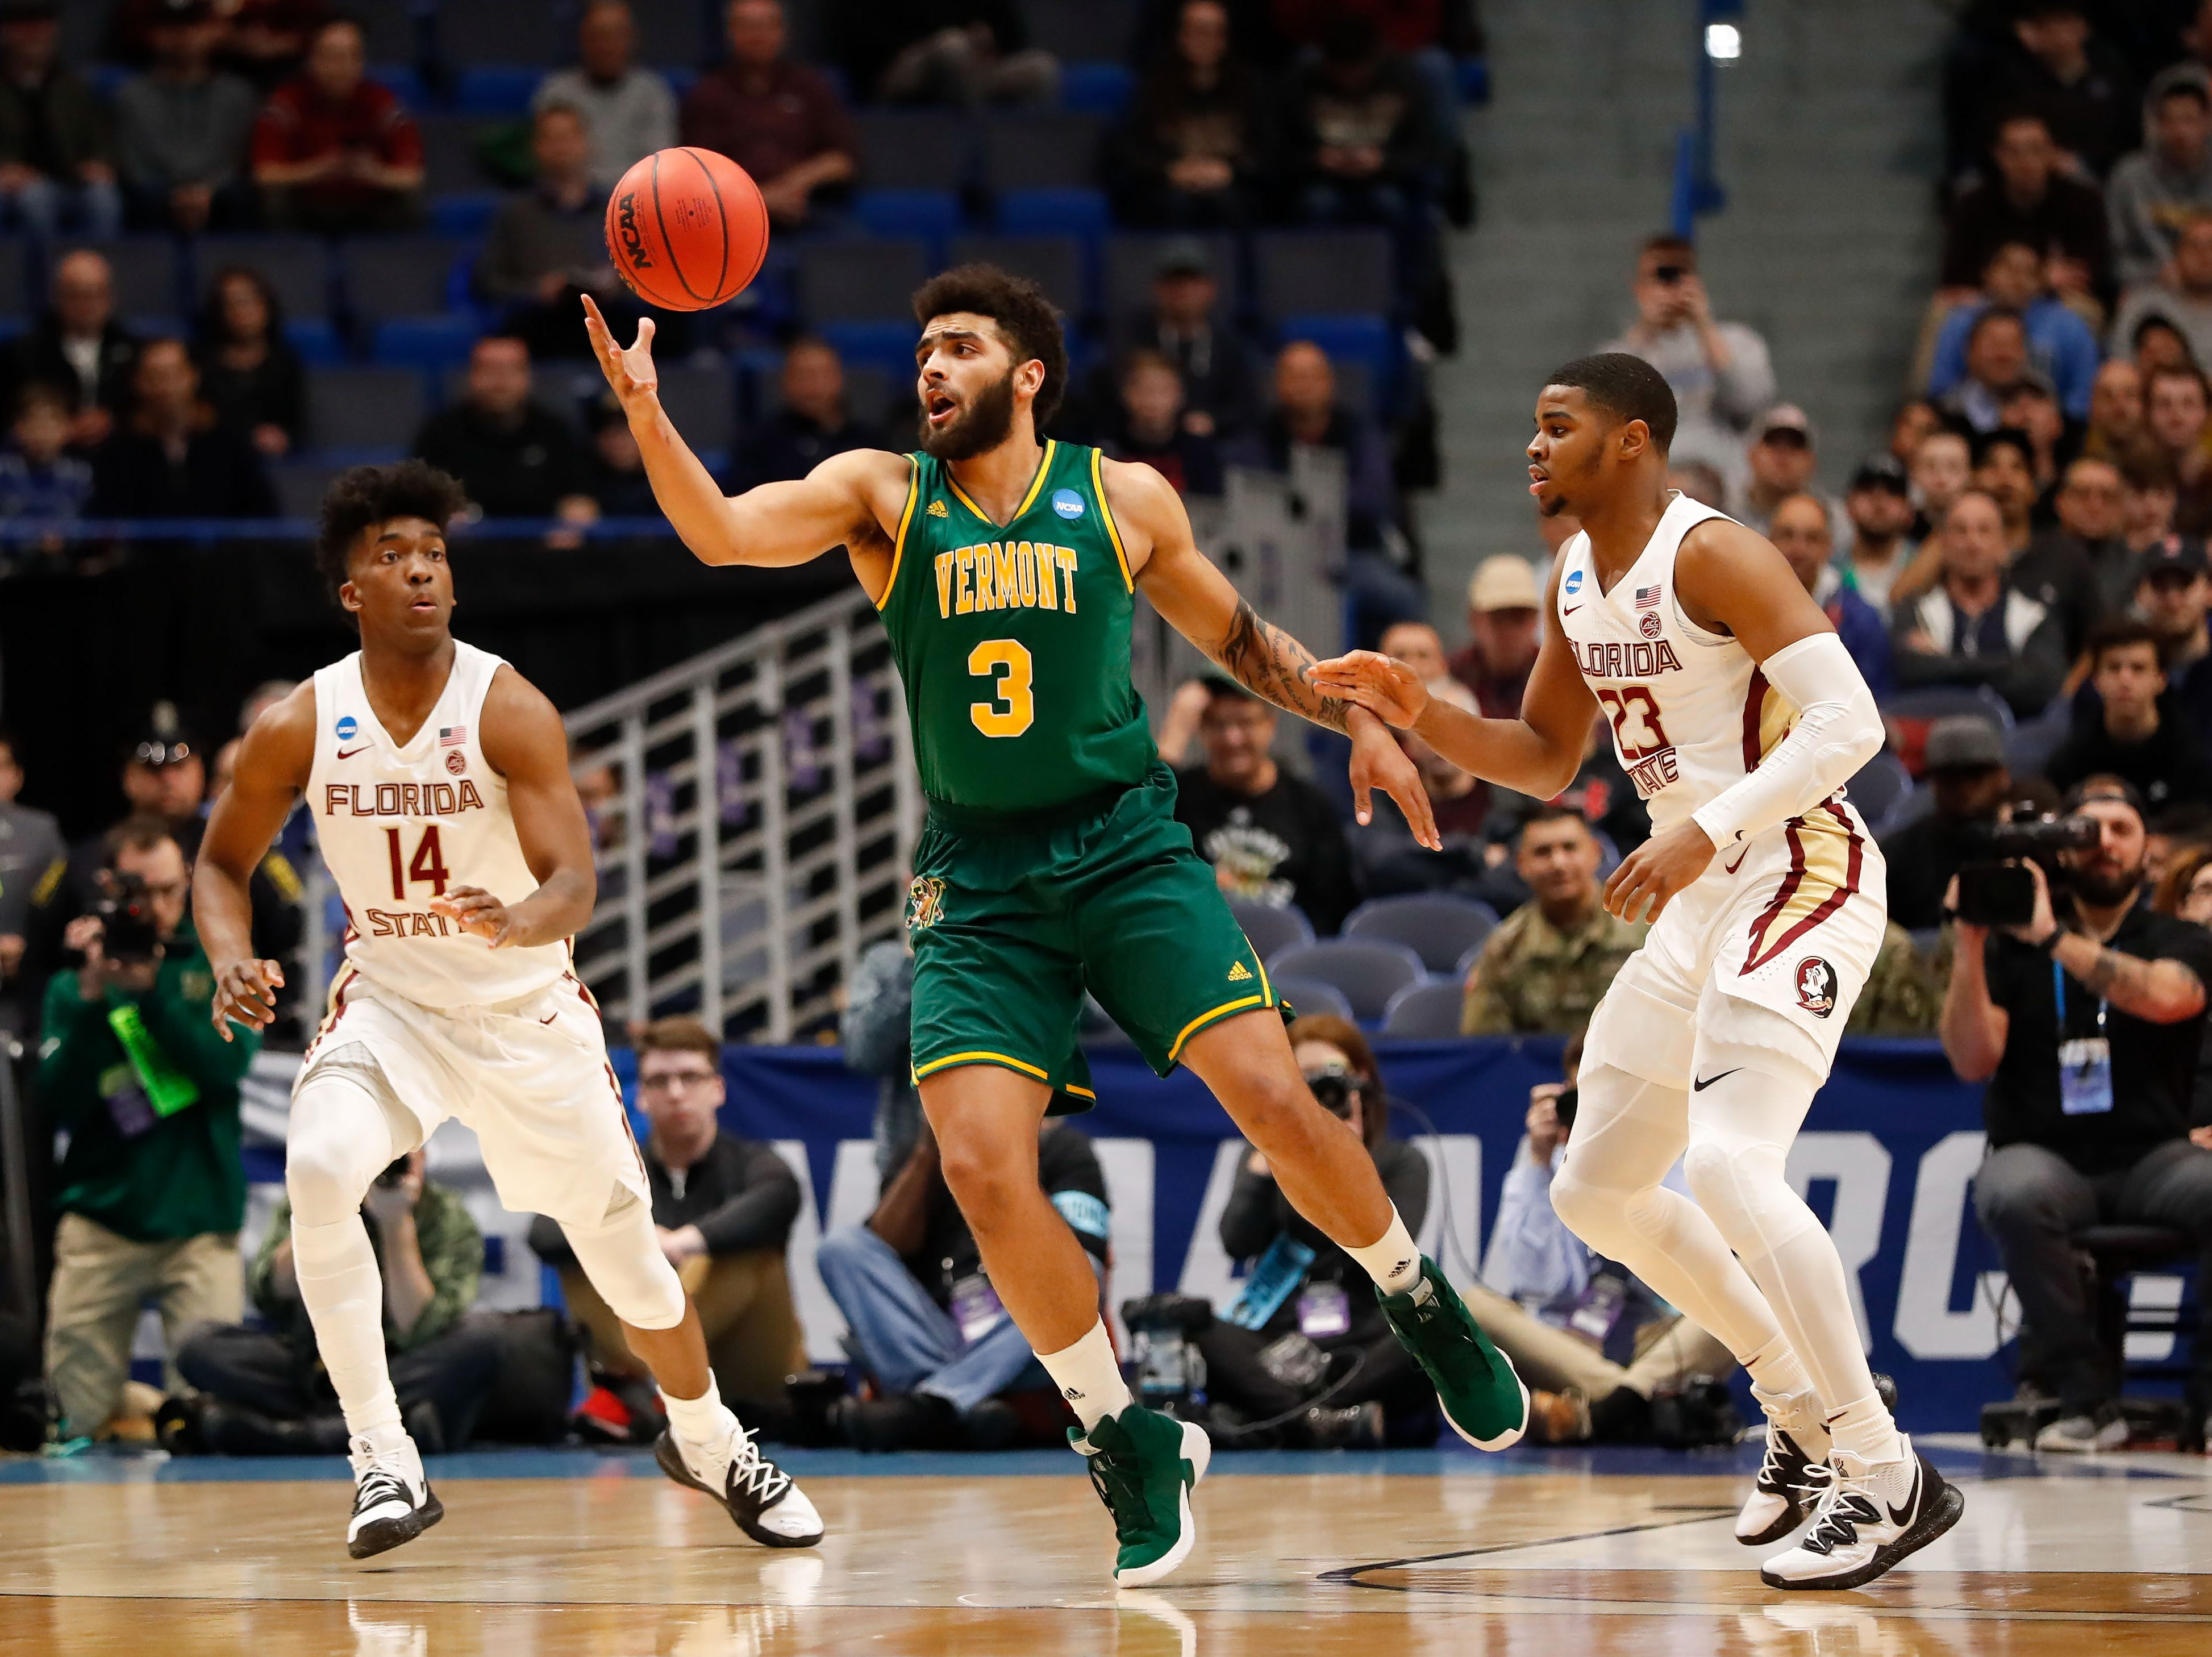 Mar 21, 2019; Hartford, CT, USA; Vermont Catamounts forward Anthony Lamb (3) catches a pass in between Florida State Seminoles guard M.J. Walker (23) and guard Terance Mann (14) during the first half of game in the first round of the 2019 NCAA Tournament at XL Center. Mandatory Credit: David Butler II-USA TODAY Sports